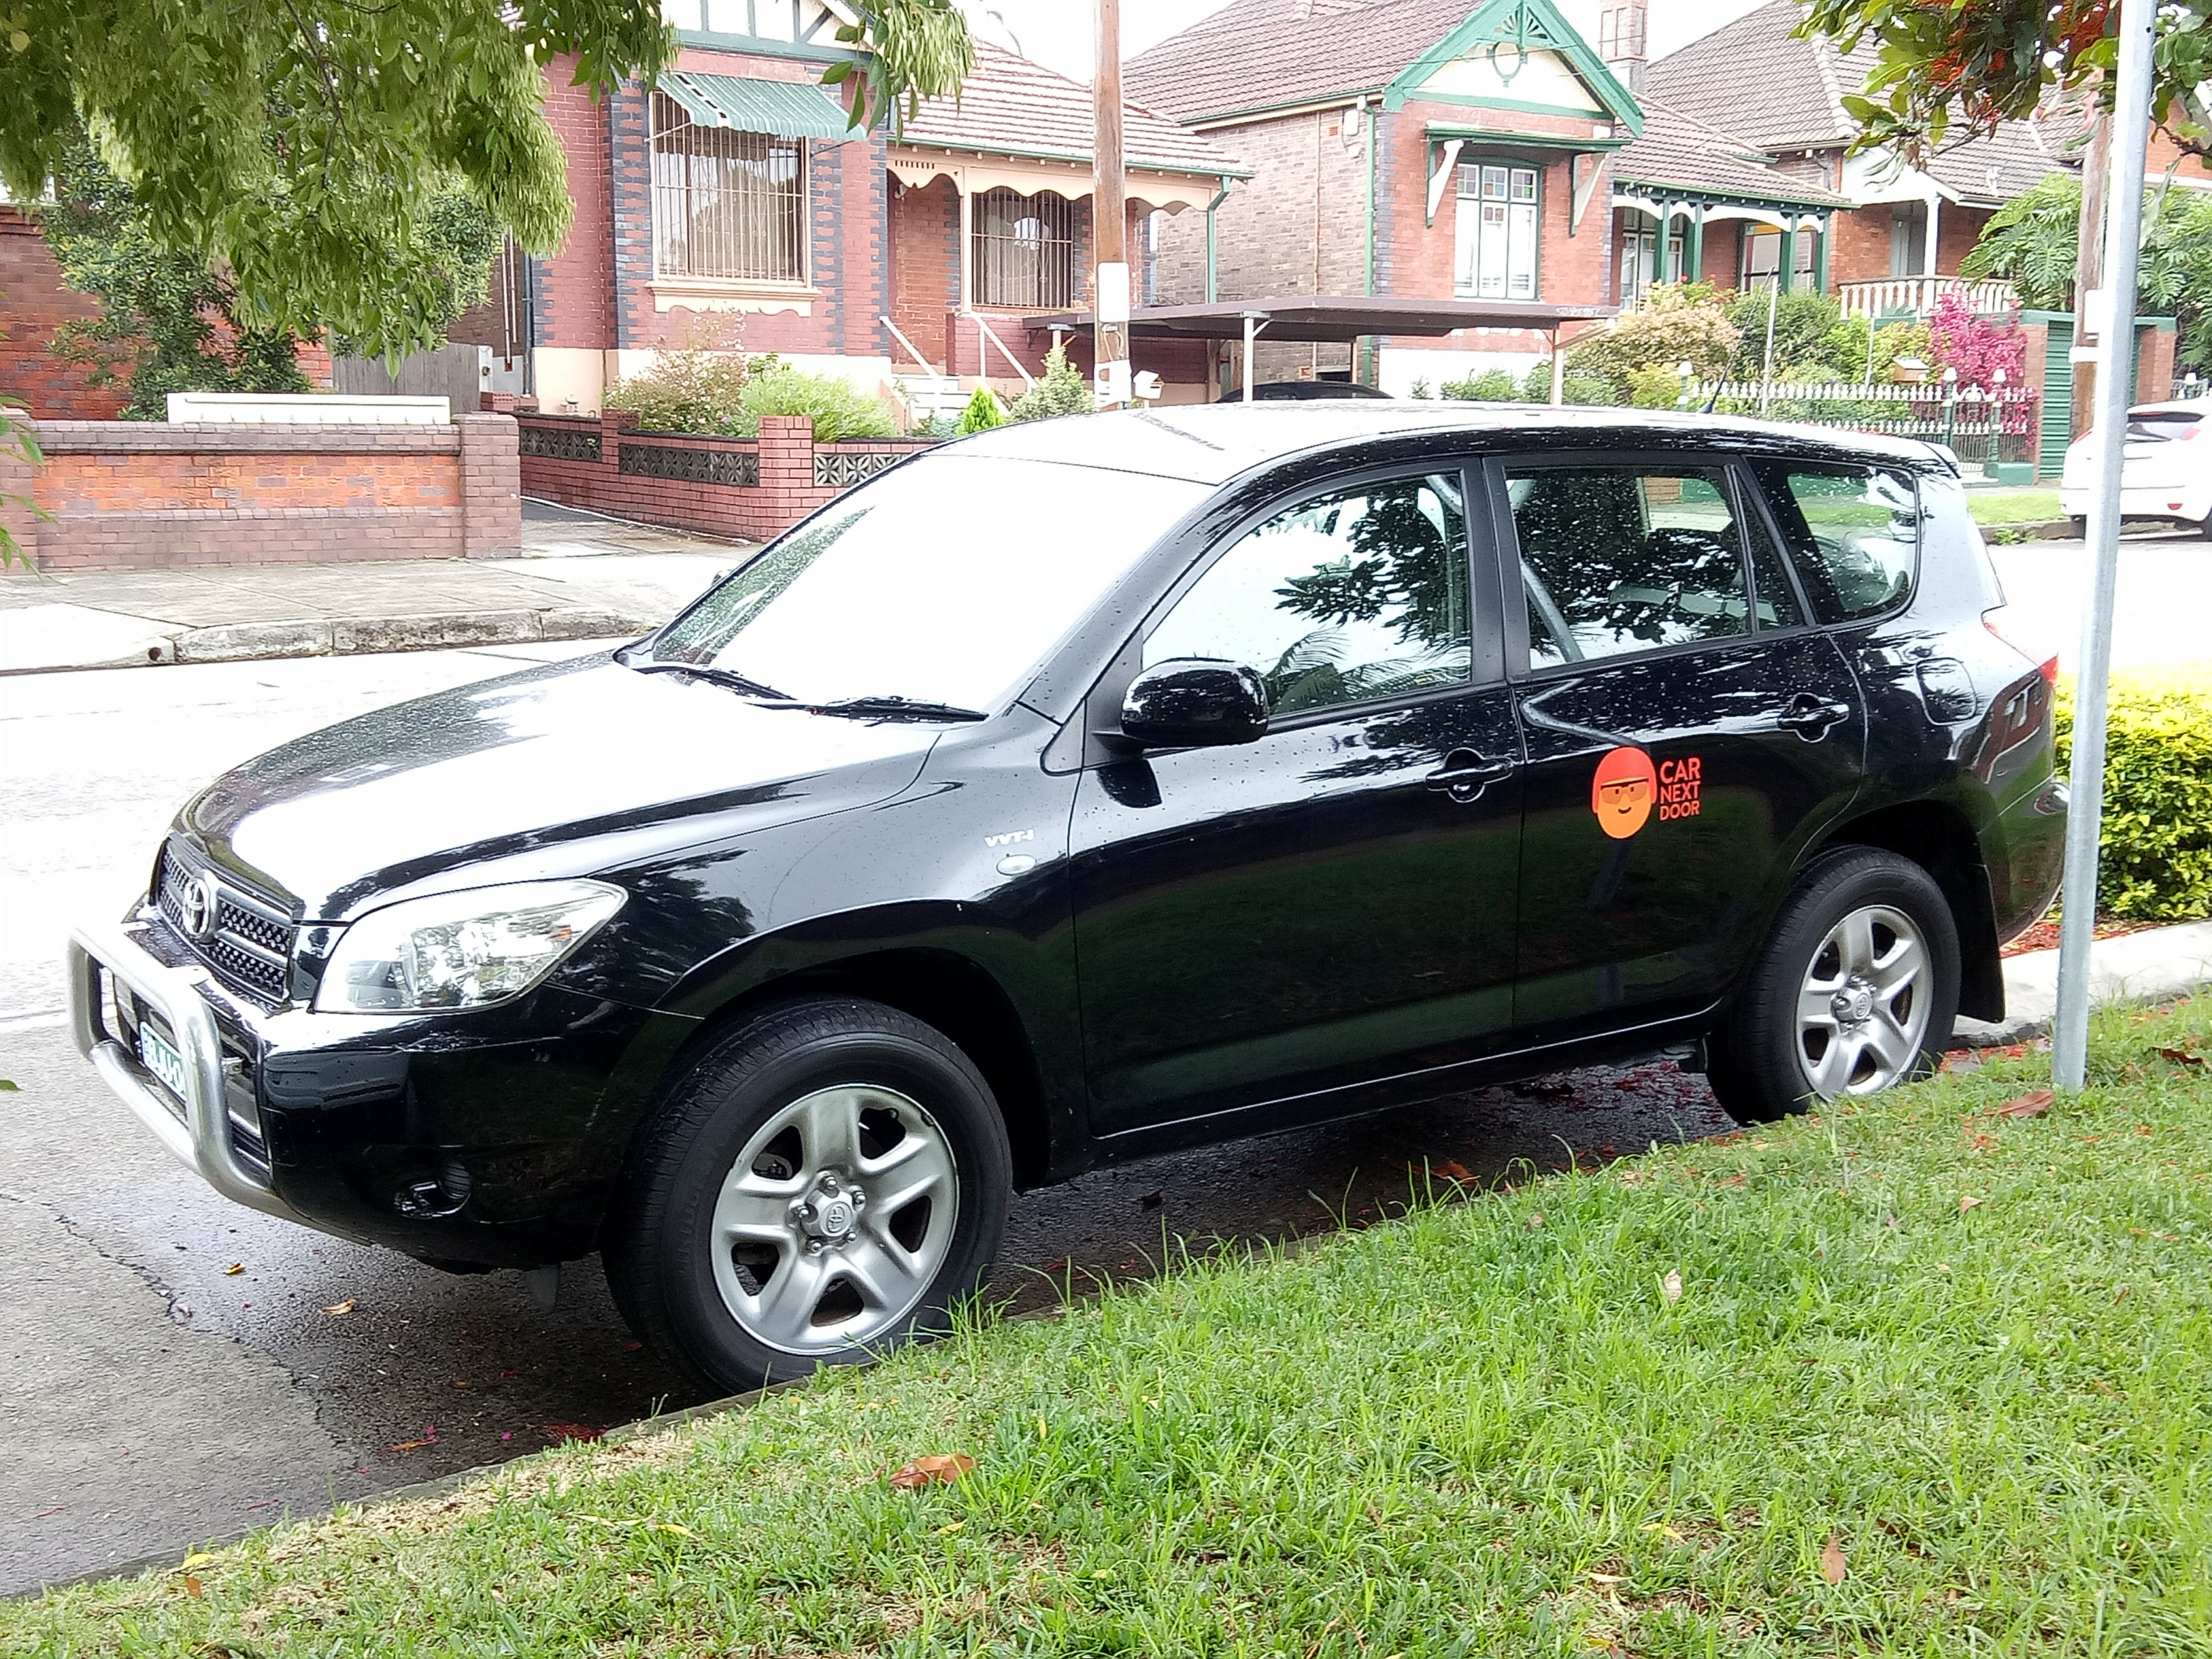 Picture of Beverley's 2006 Toyota Rav4